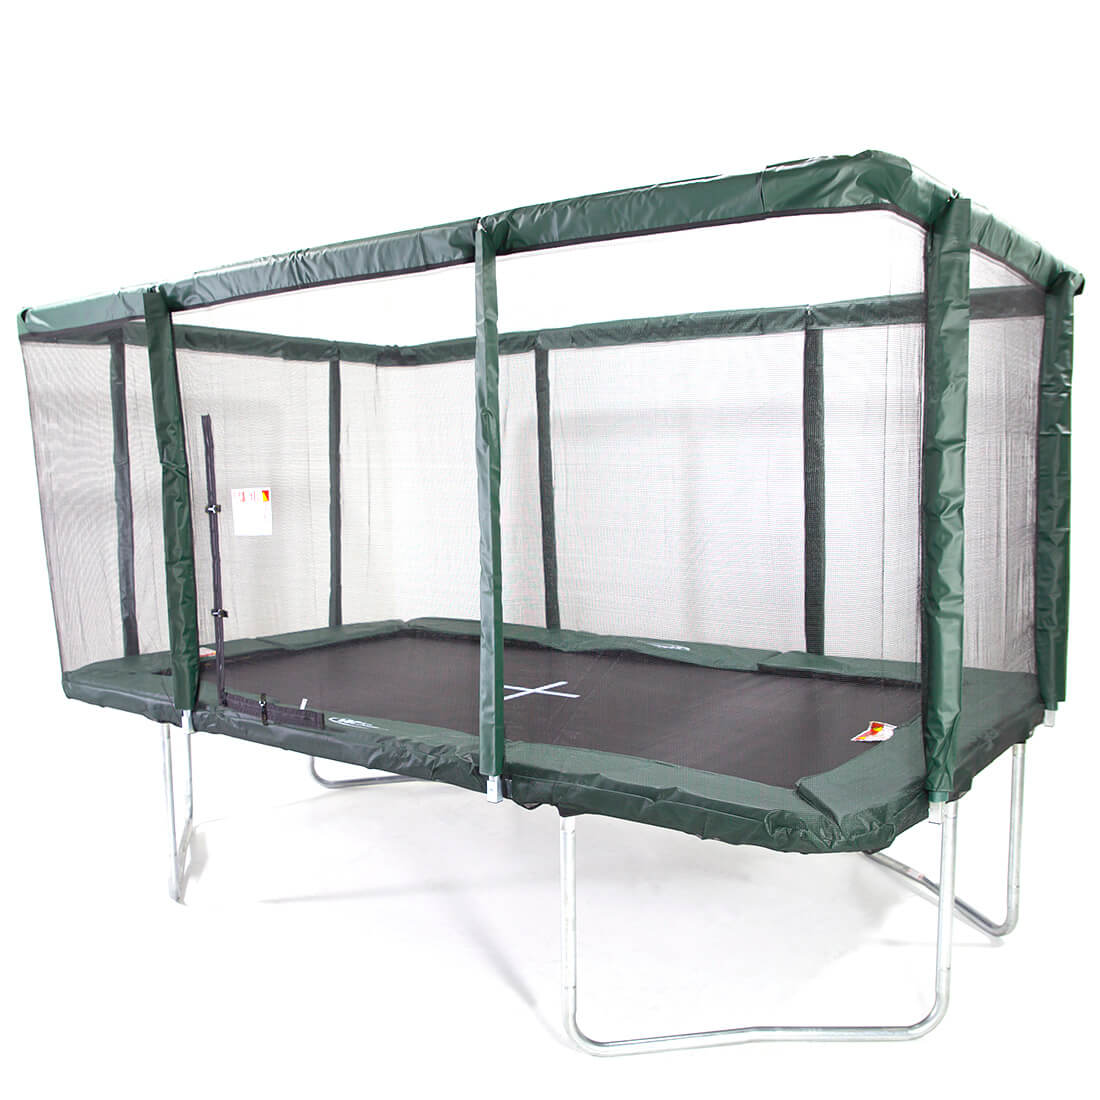 GeeTramp 9x14ft Rectangle (High Bounce) – Inc FREE Perth Delivery